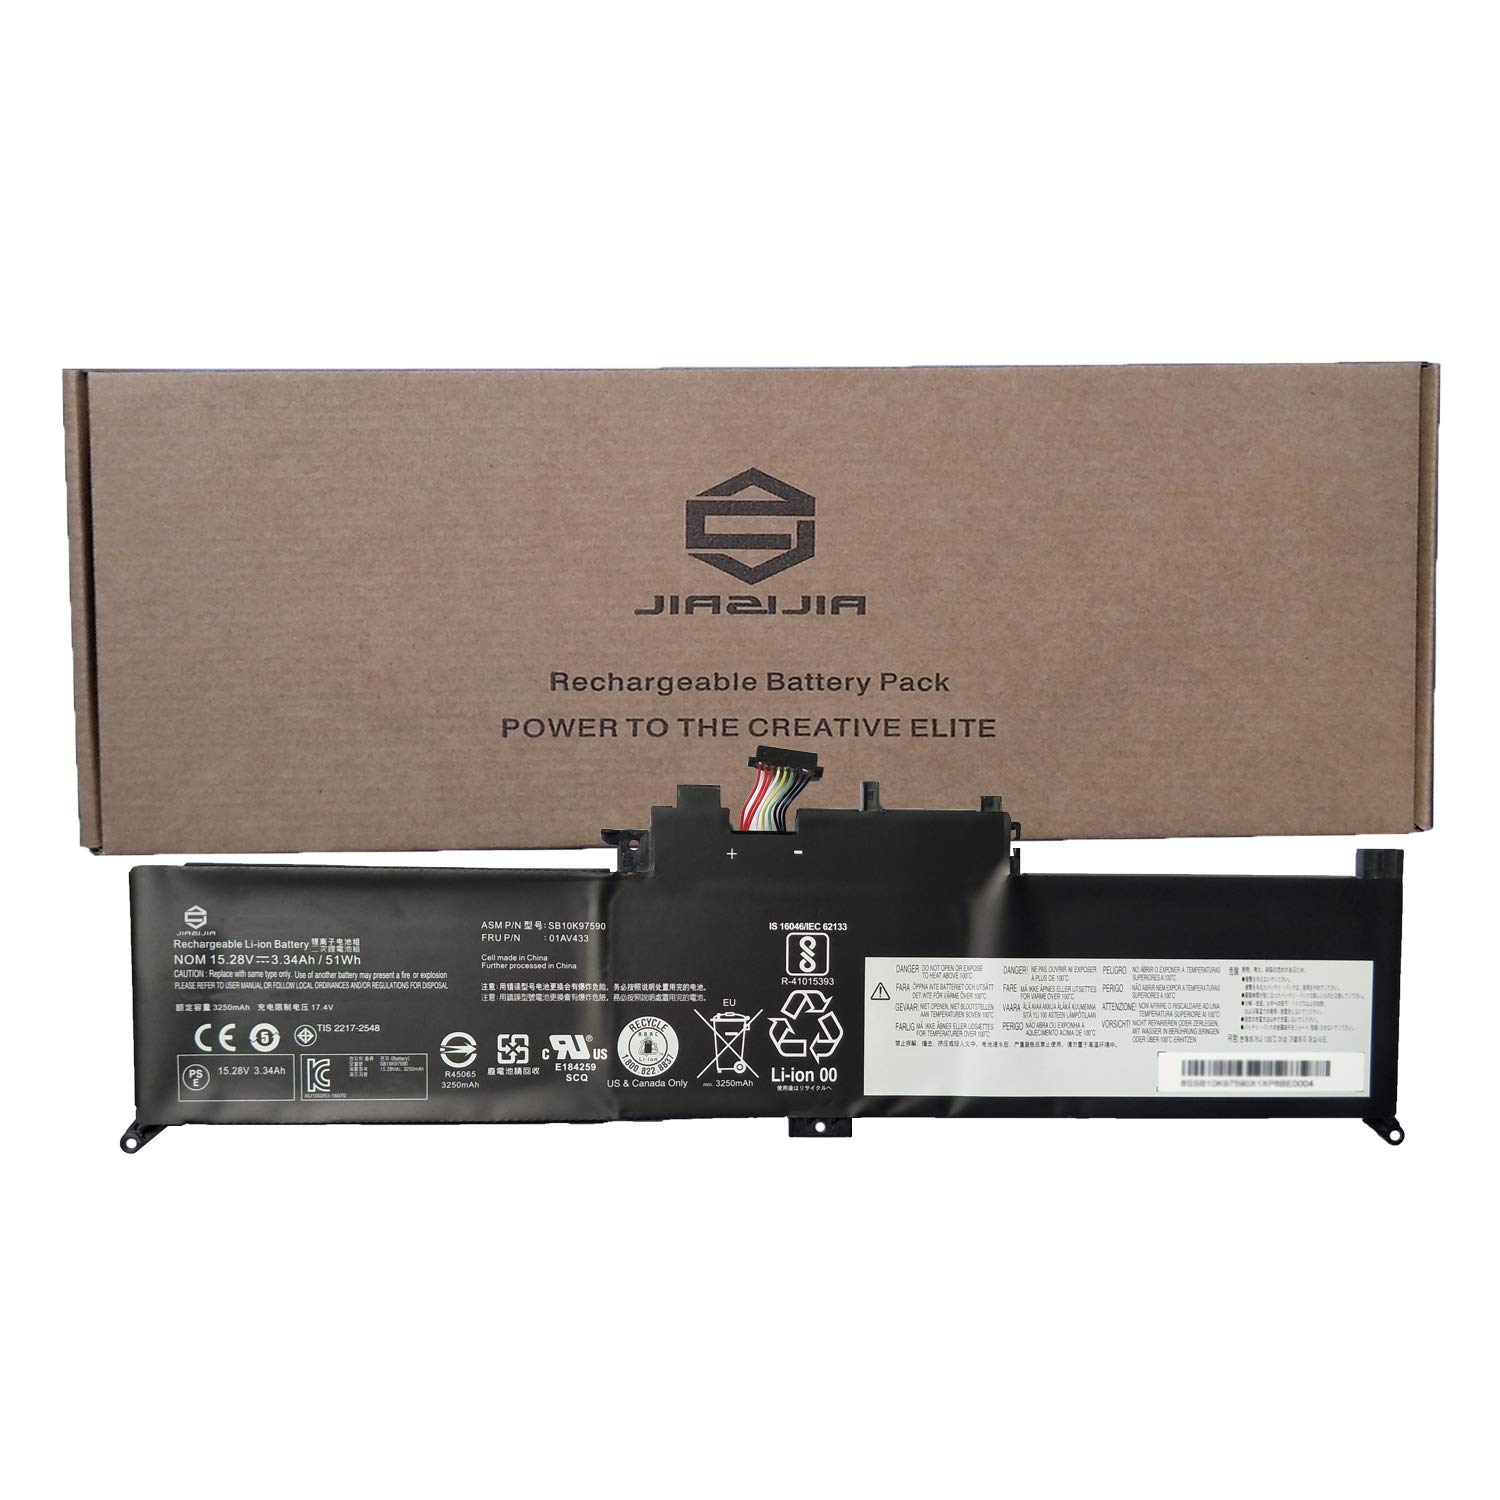 Amazon.com: JIAZIJIA 01AV433 Laptop Battery Replacement for ...